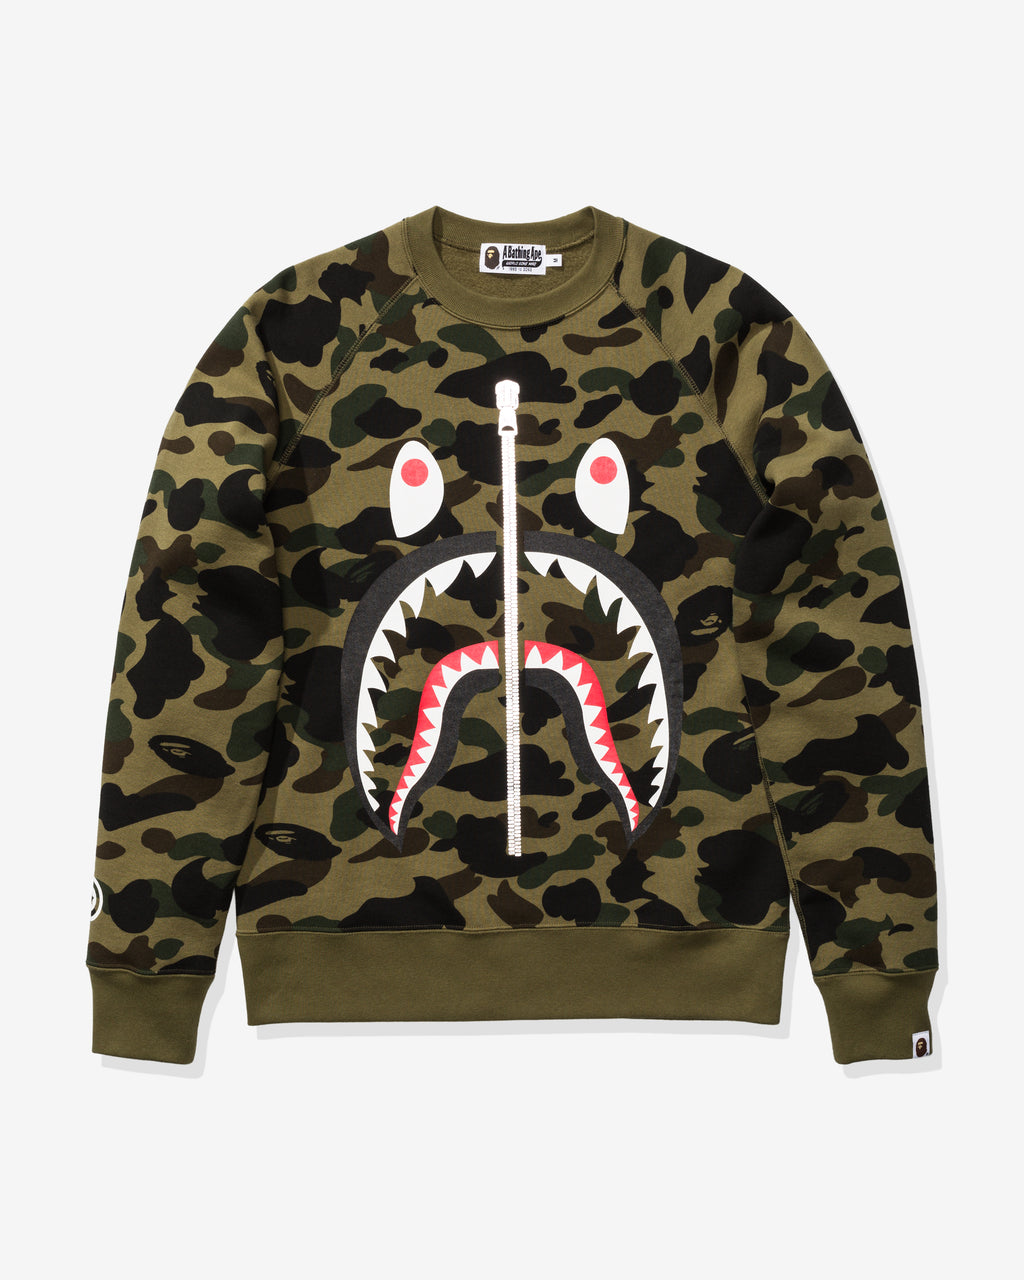 BAPE 1ST CAMO SHARK CREWNECK - GREEN